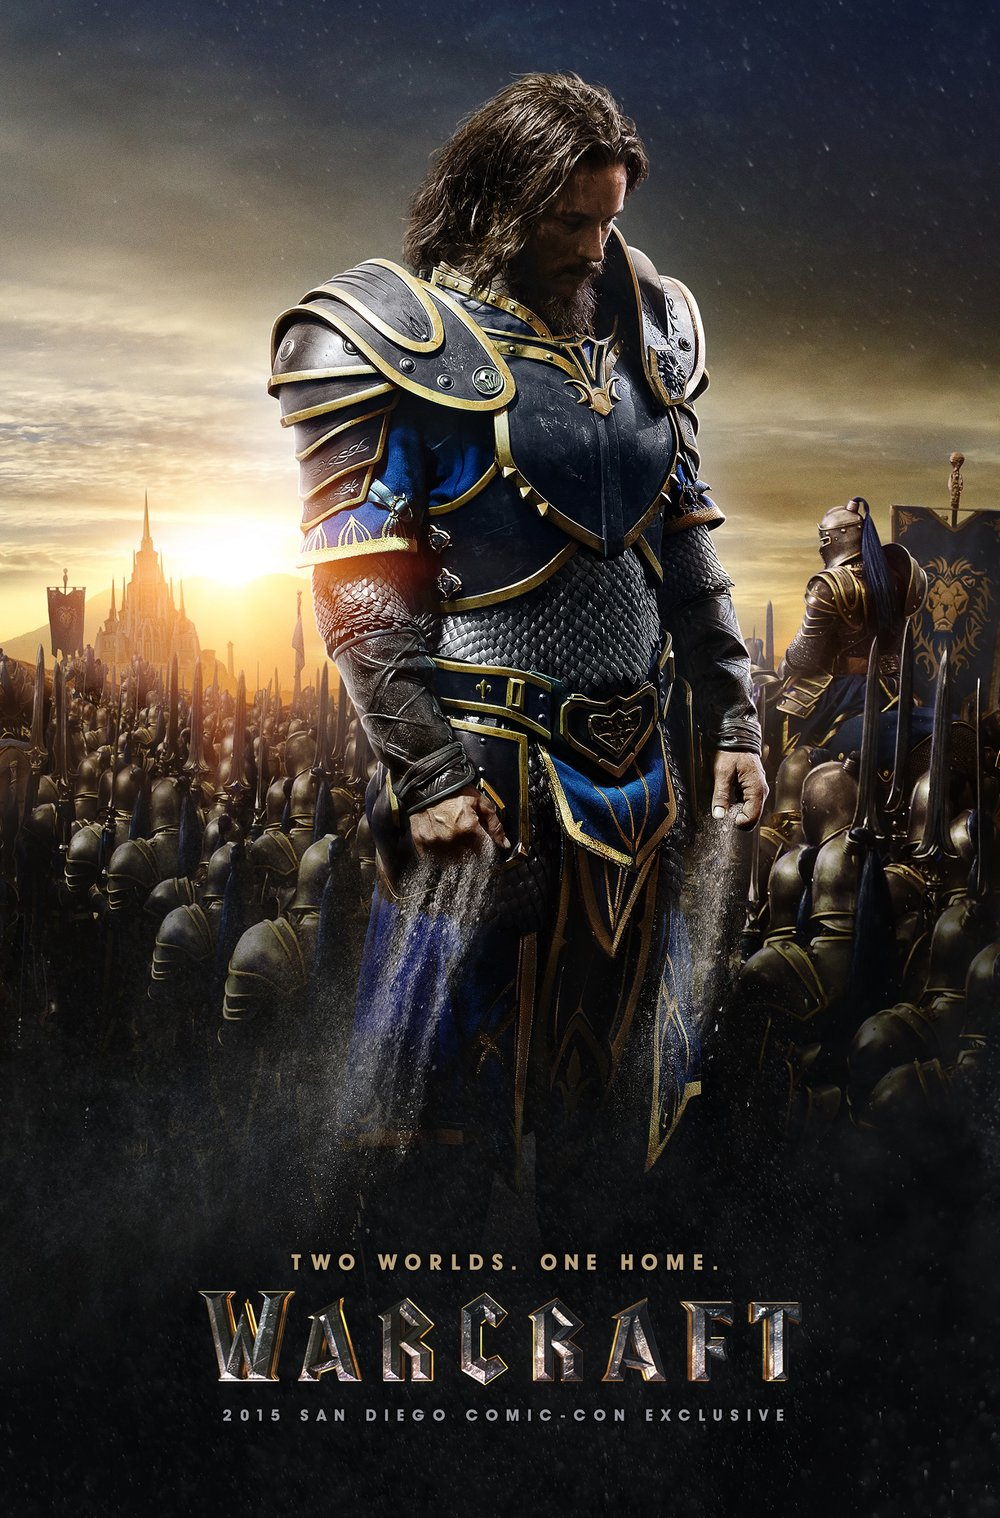 warcraft-posterspss-01-large.jpg